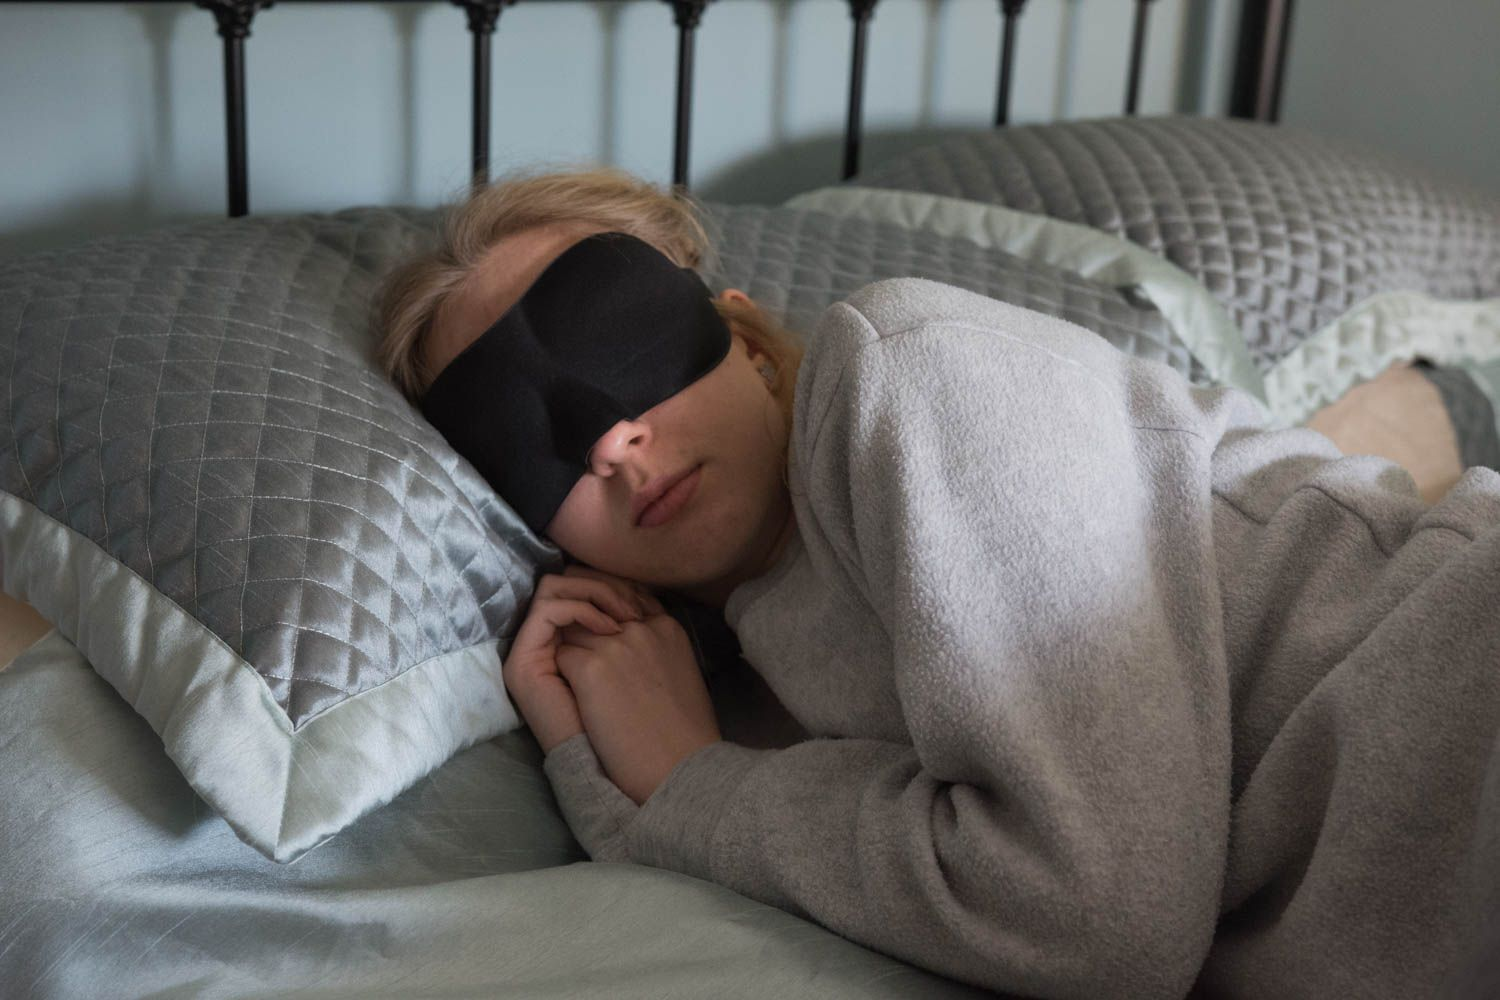 Confession time: I am completely dependent on eye masks for sleep. If I'm traveling and forget one, I'll use towels and t-shirts to cover my eyes.